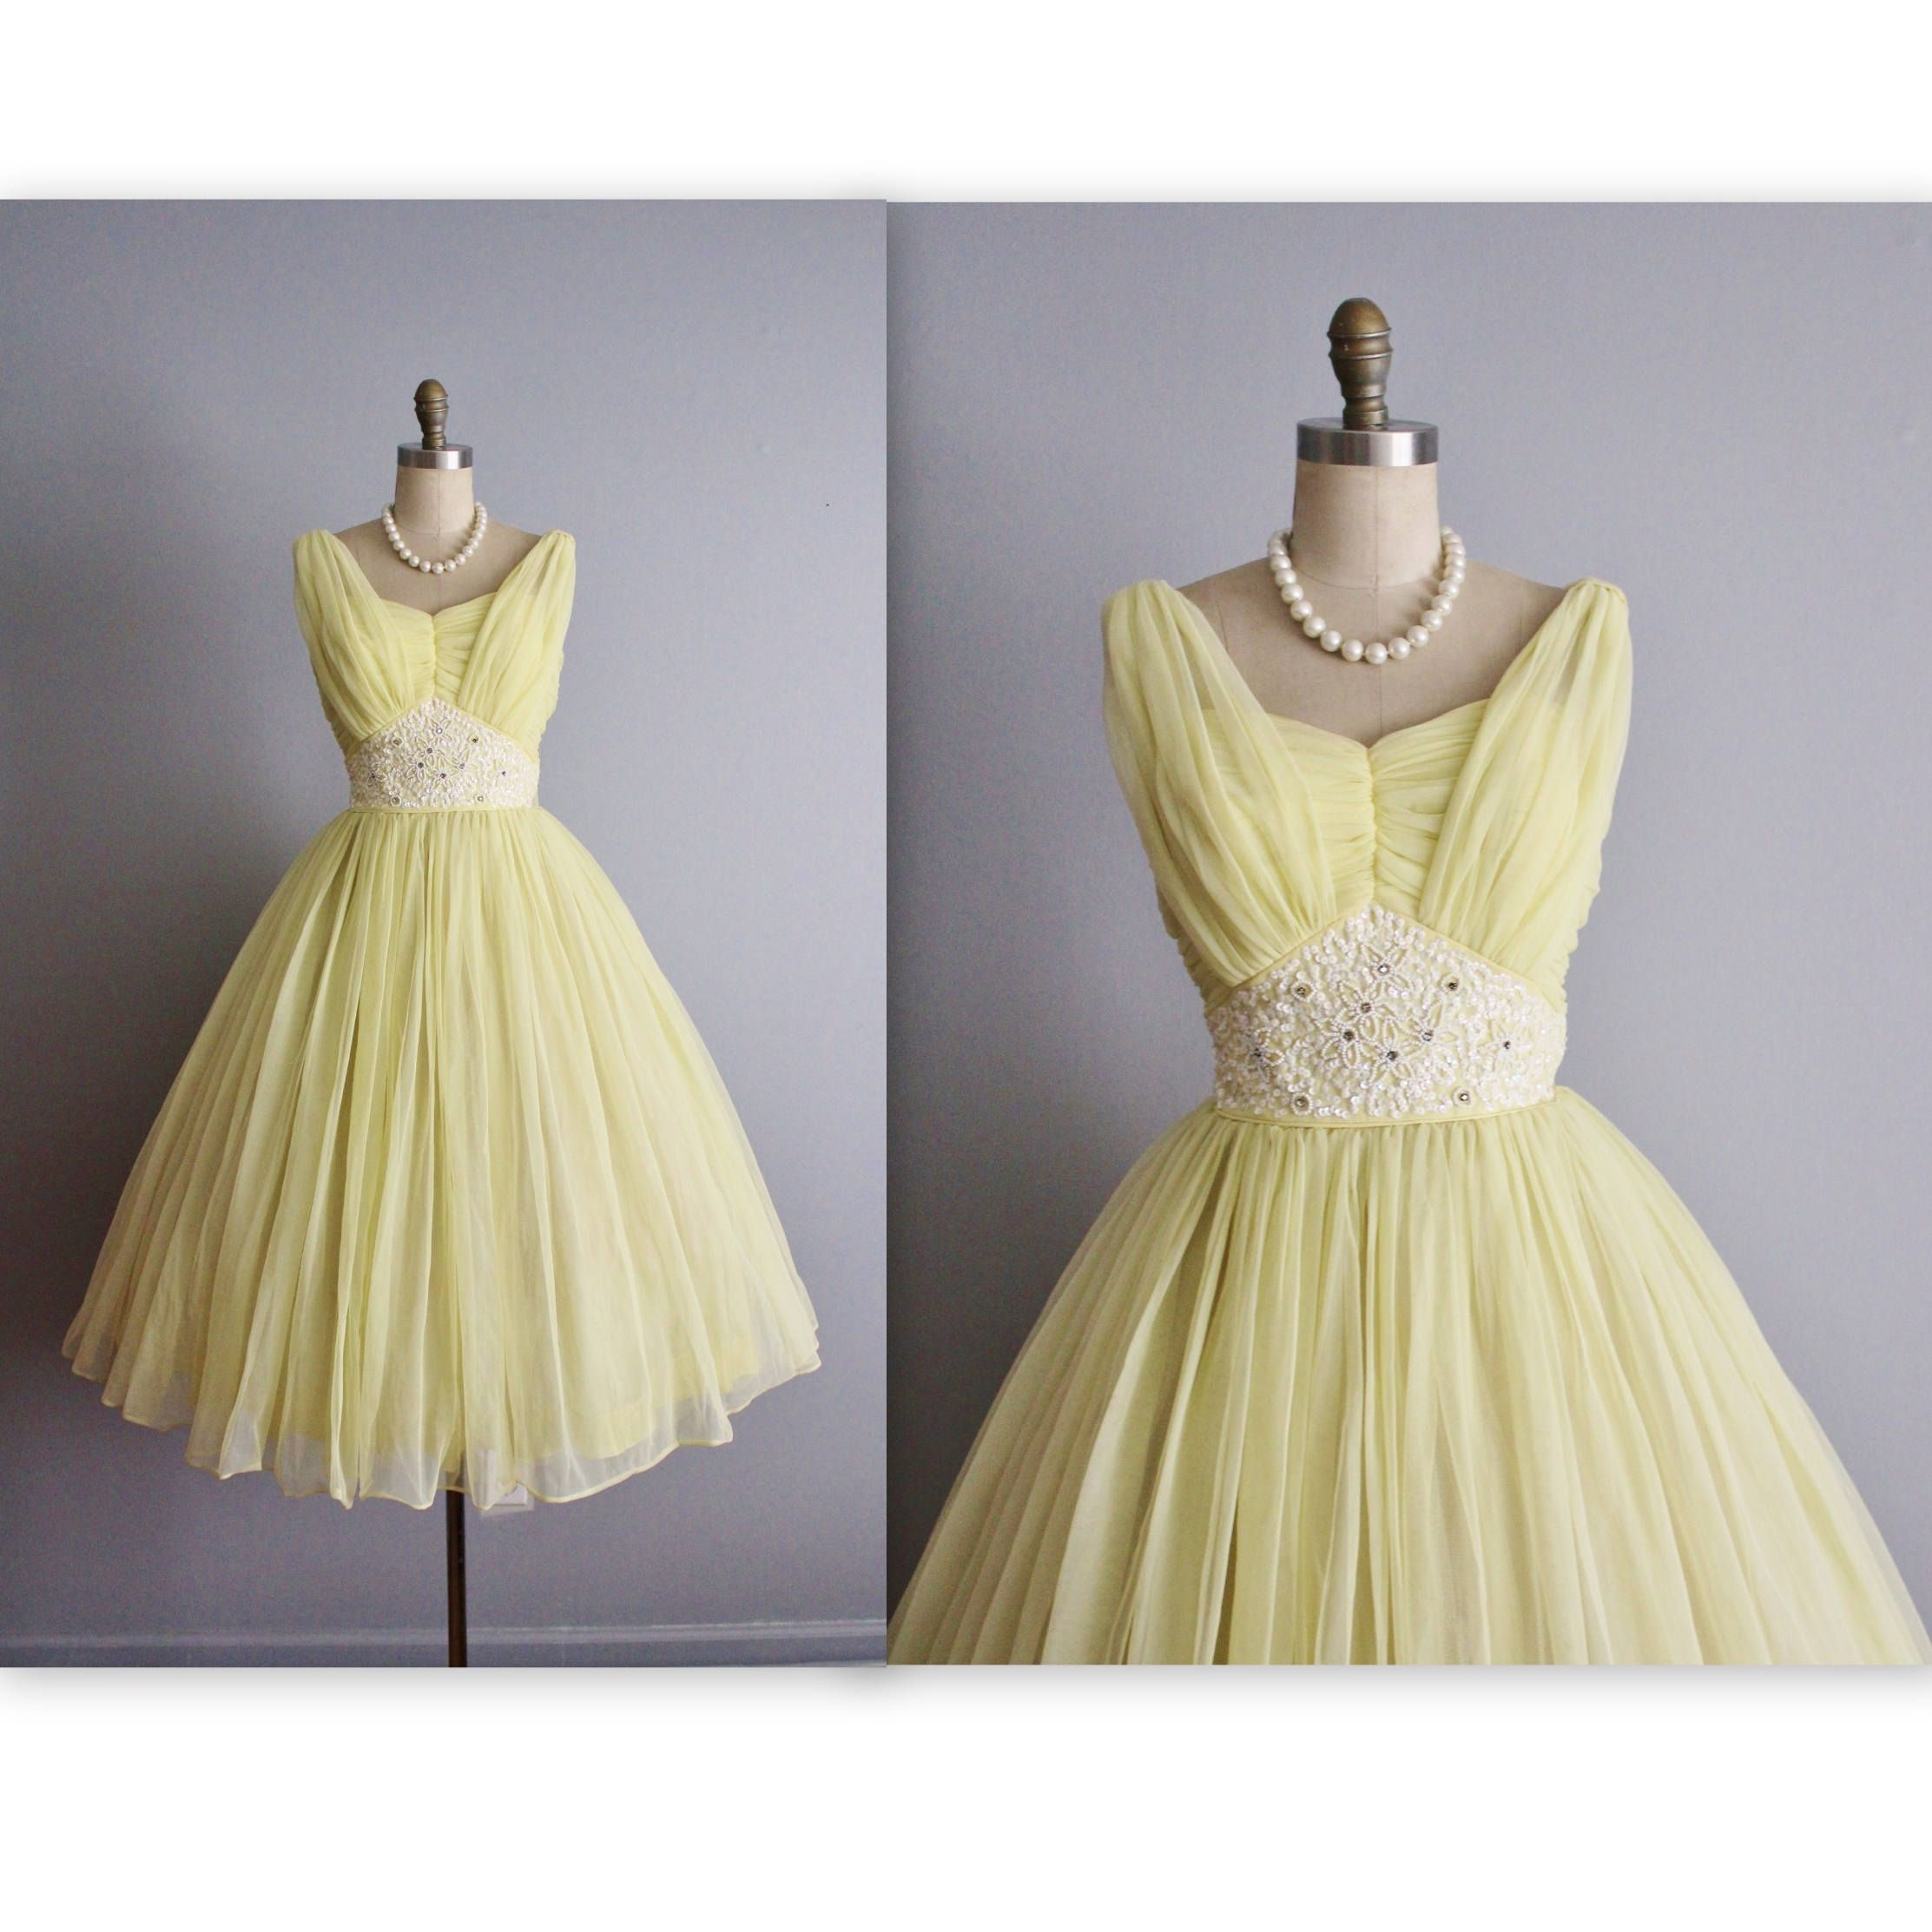 Gorgeous 50s Dress Features Include Clic Silhouette Vibrant Lemon Chiffon Strapless Sweetheart Bodice With Ruched Overlay Ornate Beadwork